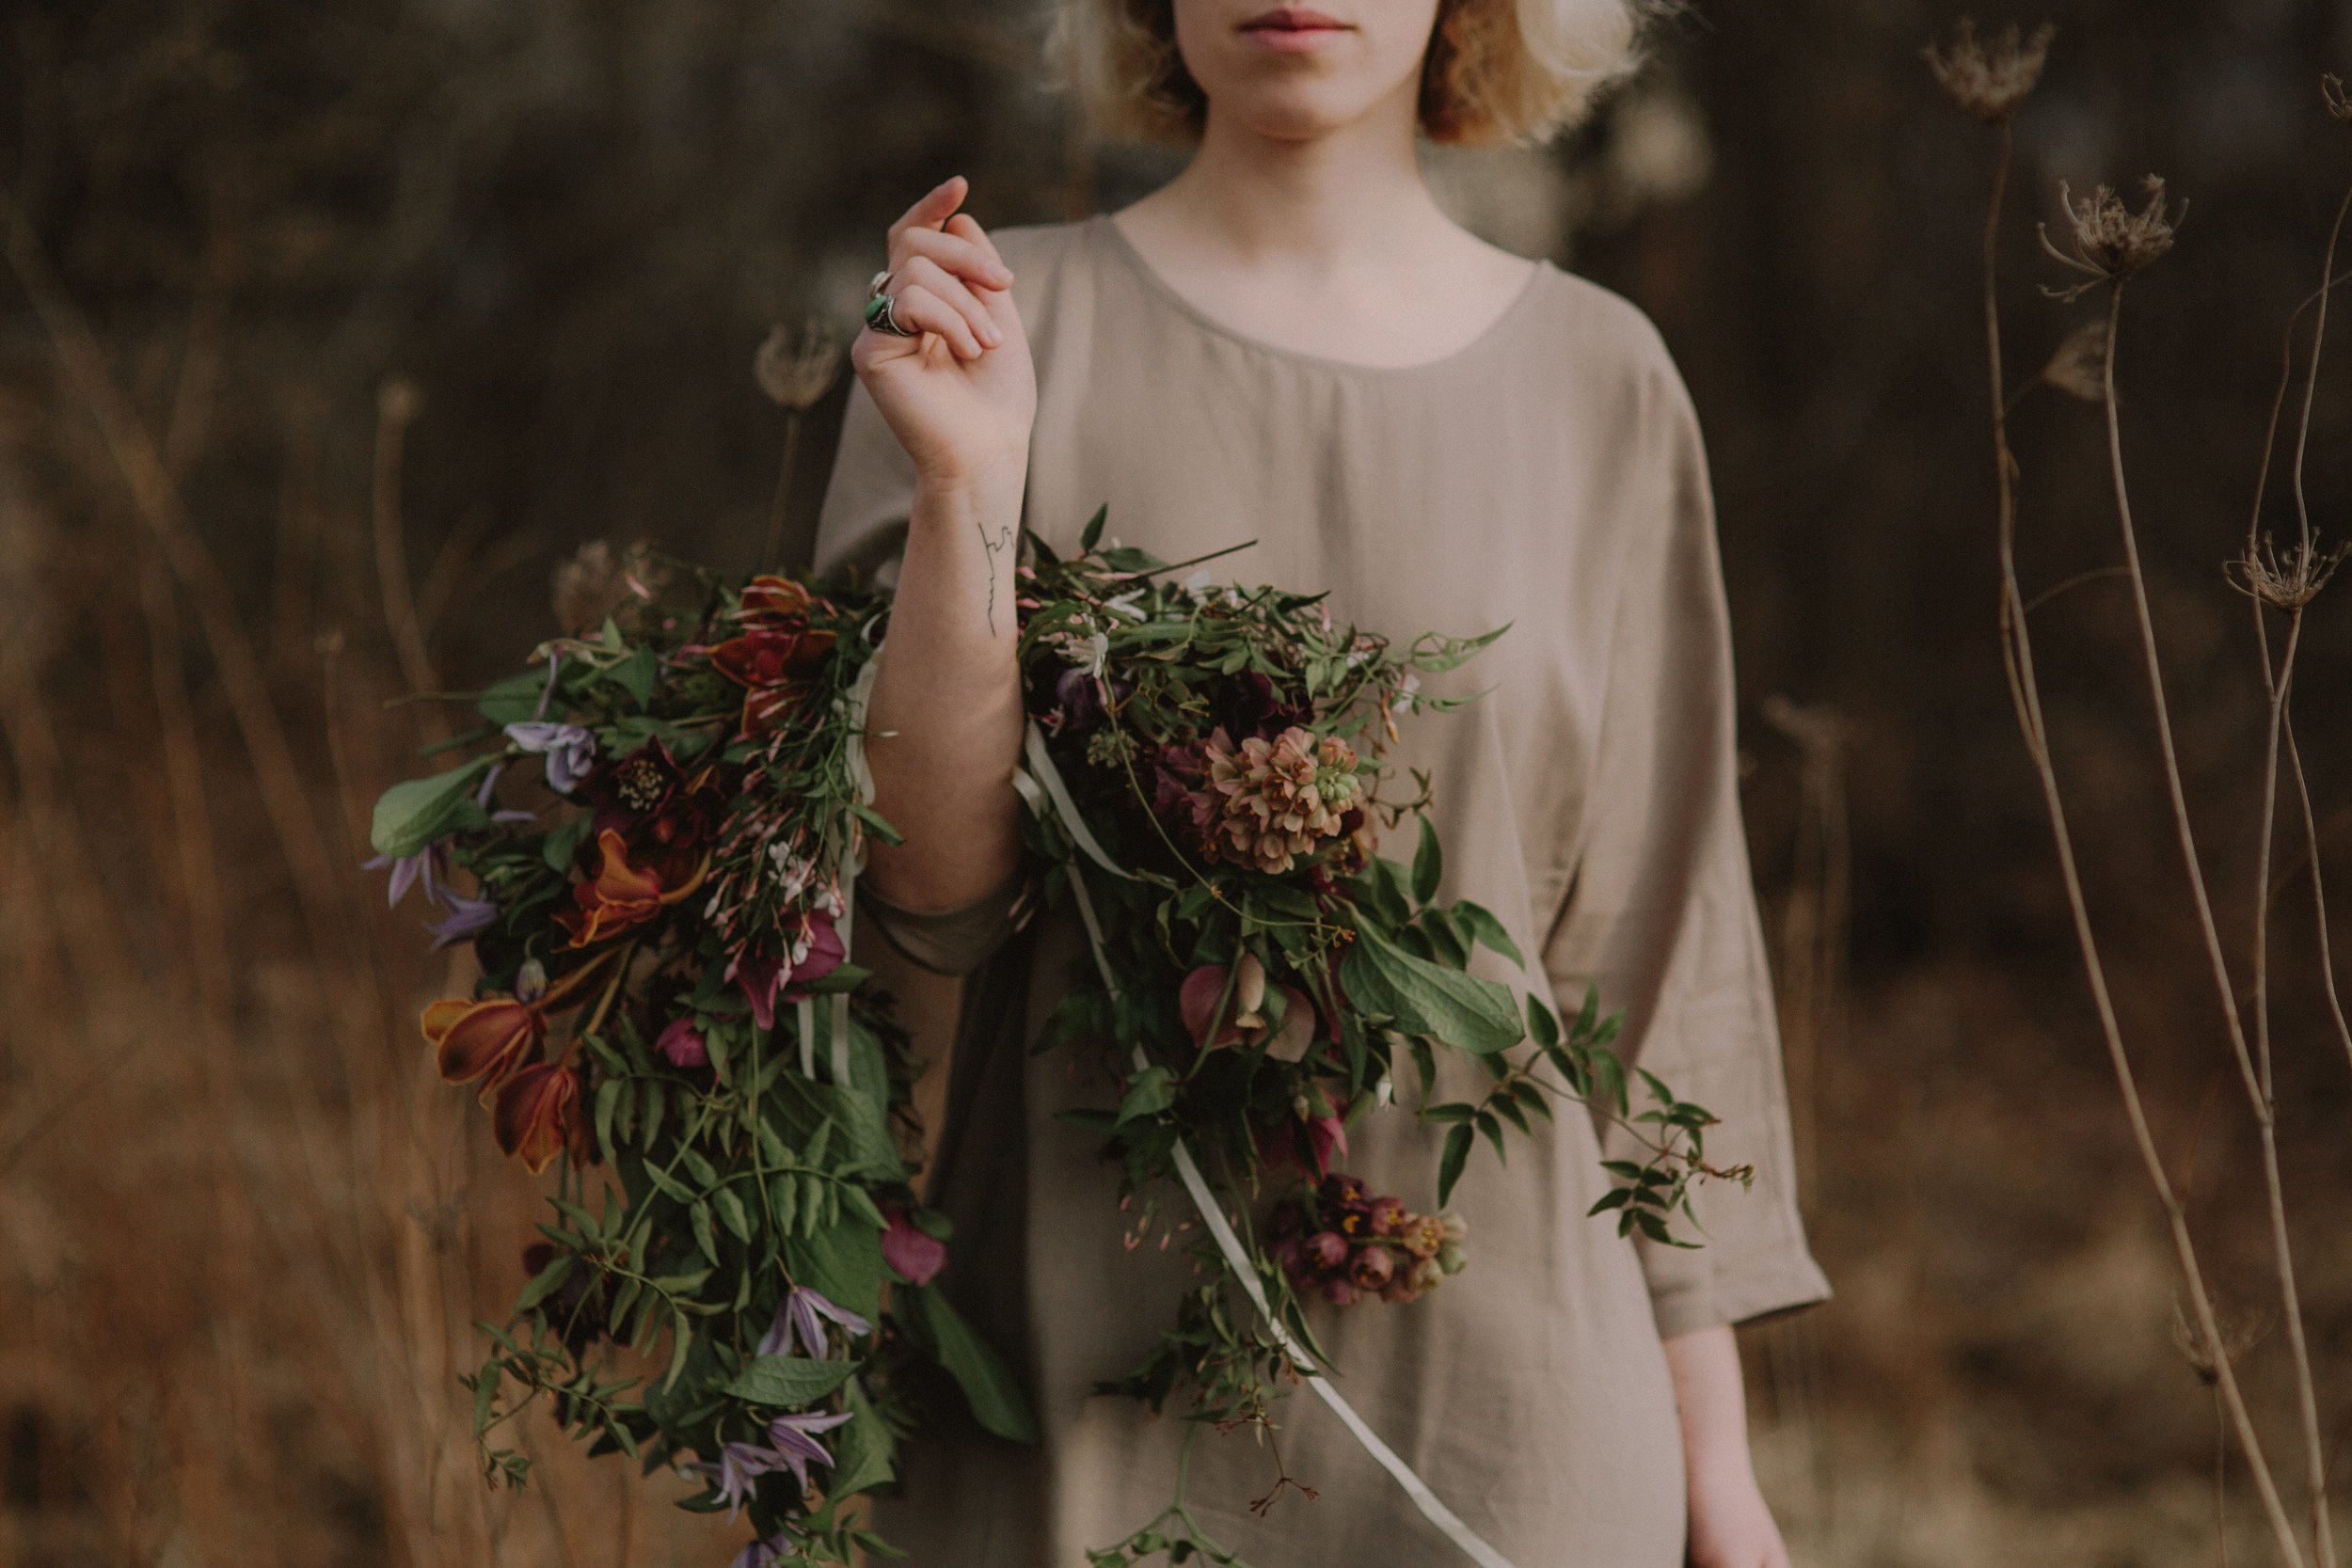 Fall wedding flowers by Nectar & Root | Wedding floral design services in Burlington, Vermont (VT) | Garland bouquet of fritillaria, orchids, clematis